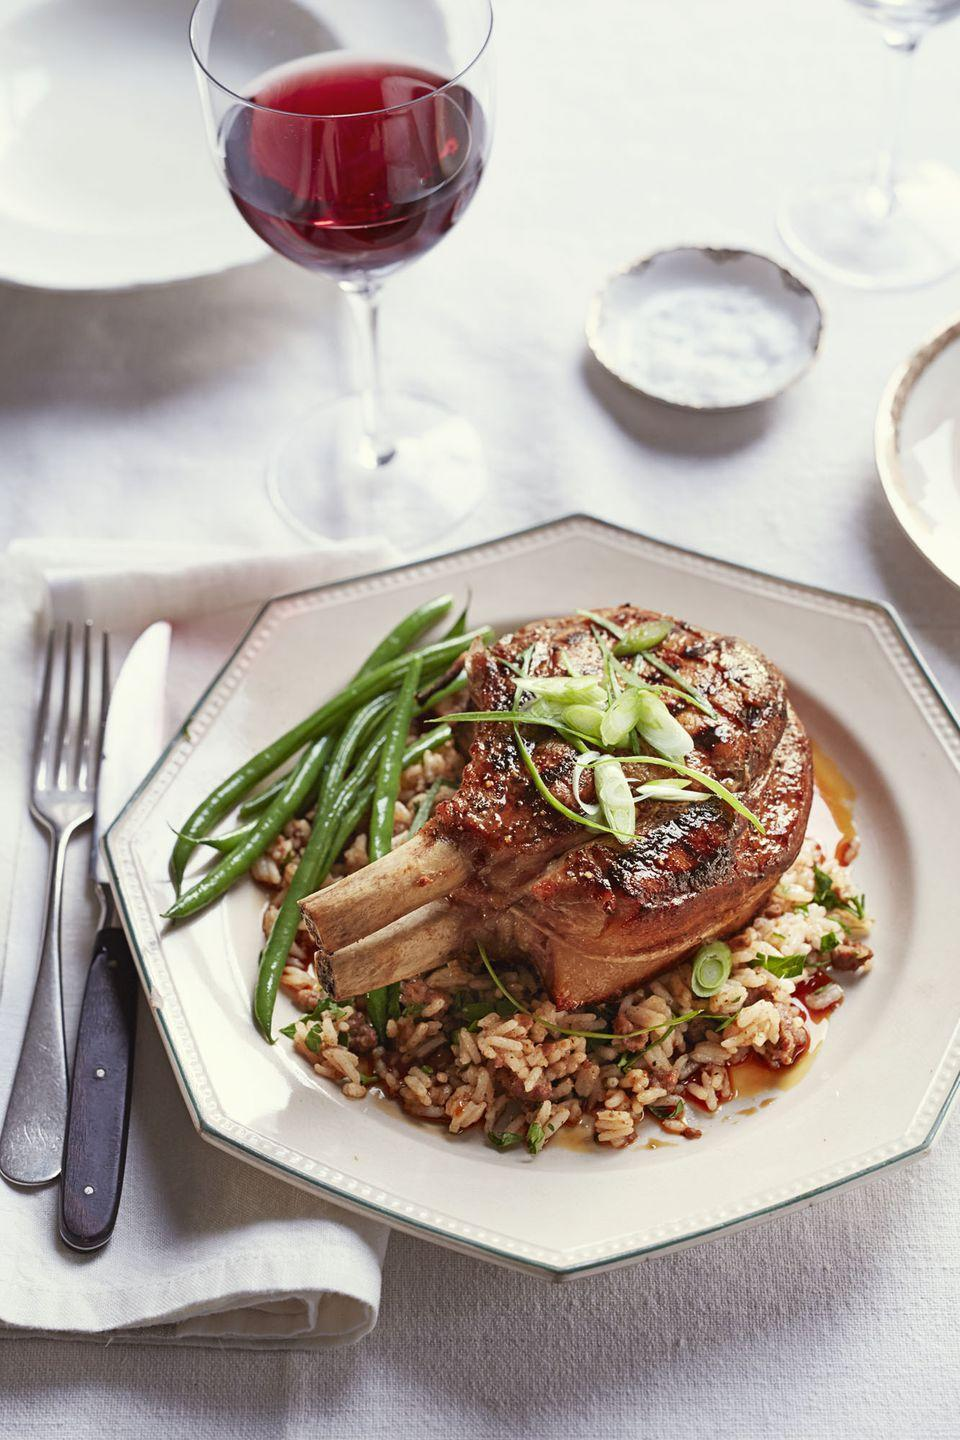 """<p>Ditch those dinner reservations and cook up this flavor-packed dinner, instead.</p><p><a href=""""https://www.goodhousekeeping.com/food-recipes/a16964/sweet-n-sticky-pork-chops-dirty-rice-recipe-ghk0315/"""" rel=""""nofollow noopener"""" target=""""_blank"""" data-ylk=""""slk:Get the recipe for Sweet 'n' Sticky Pork Chops with &quot;Dirty&quot; Rice »"""" class=""""link rapid-noclick-resp""""><em>Get the recipe for Sweet 'n' Sticky Pork Chops with """"Dirty"""" Rice »</em></a></p>"""